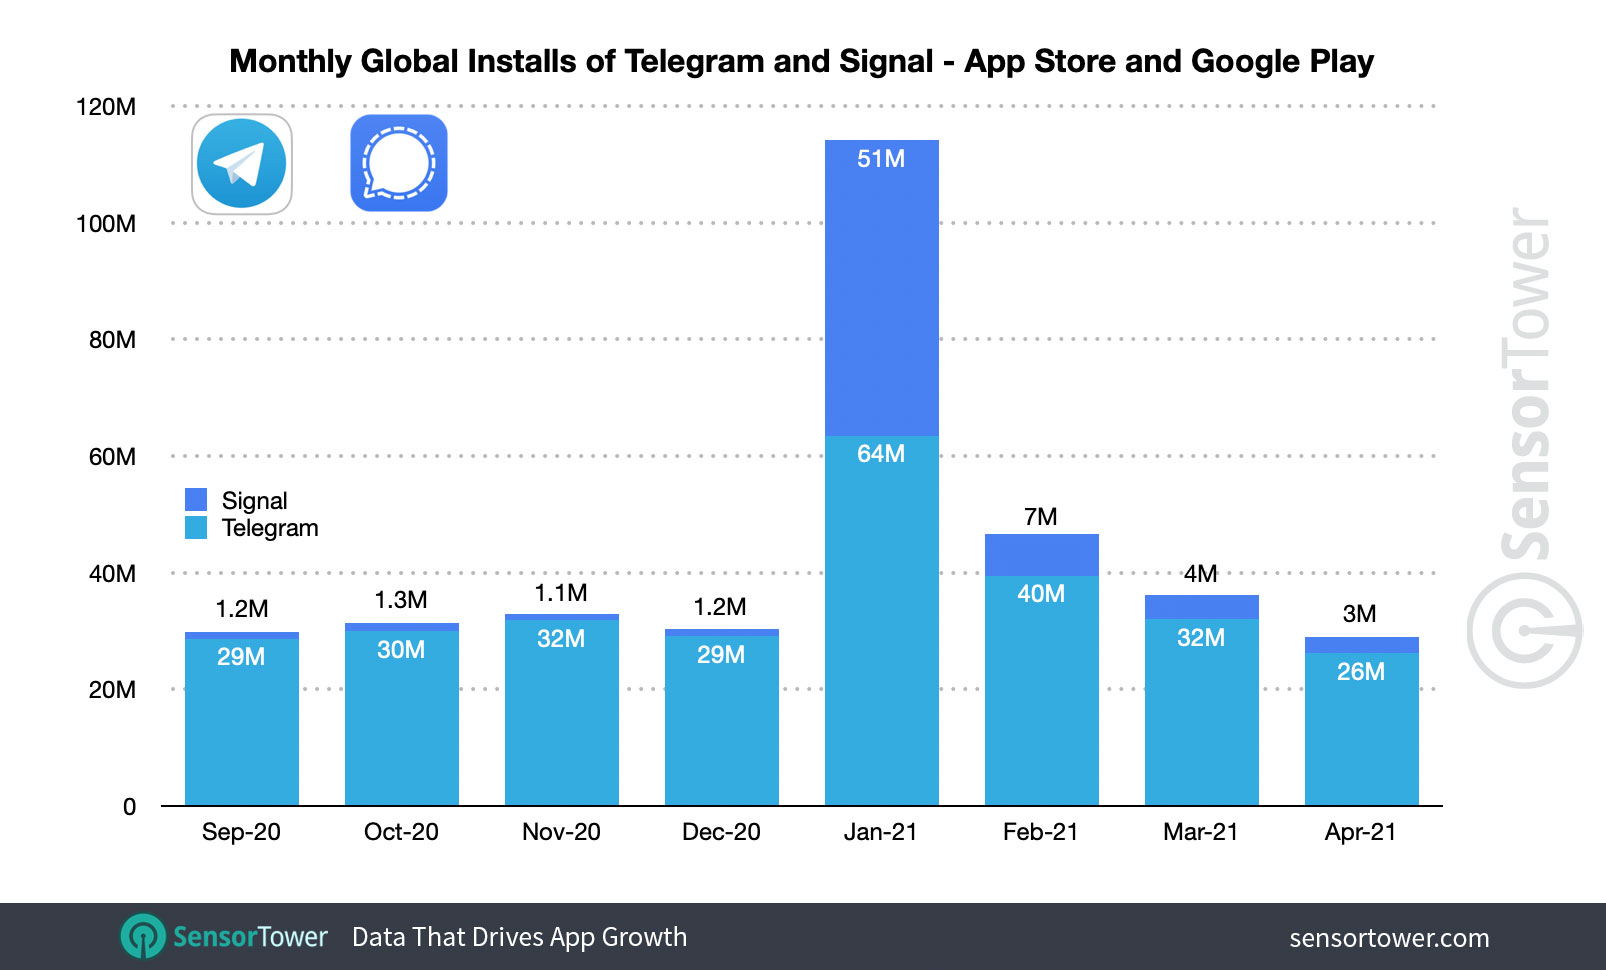 After a surge of adoption in January 2021, Telegram and Signal's installs are normalizing.